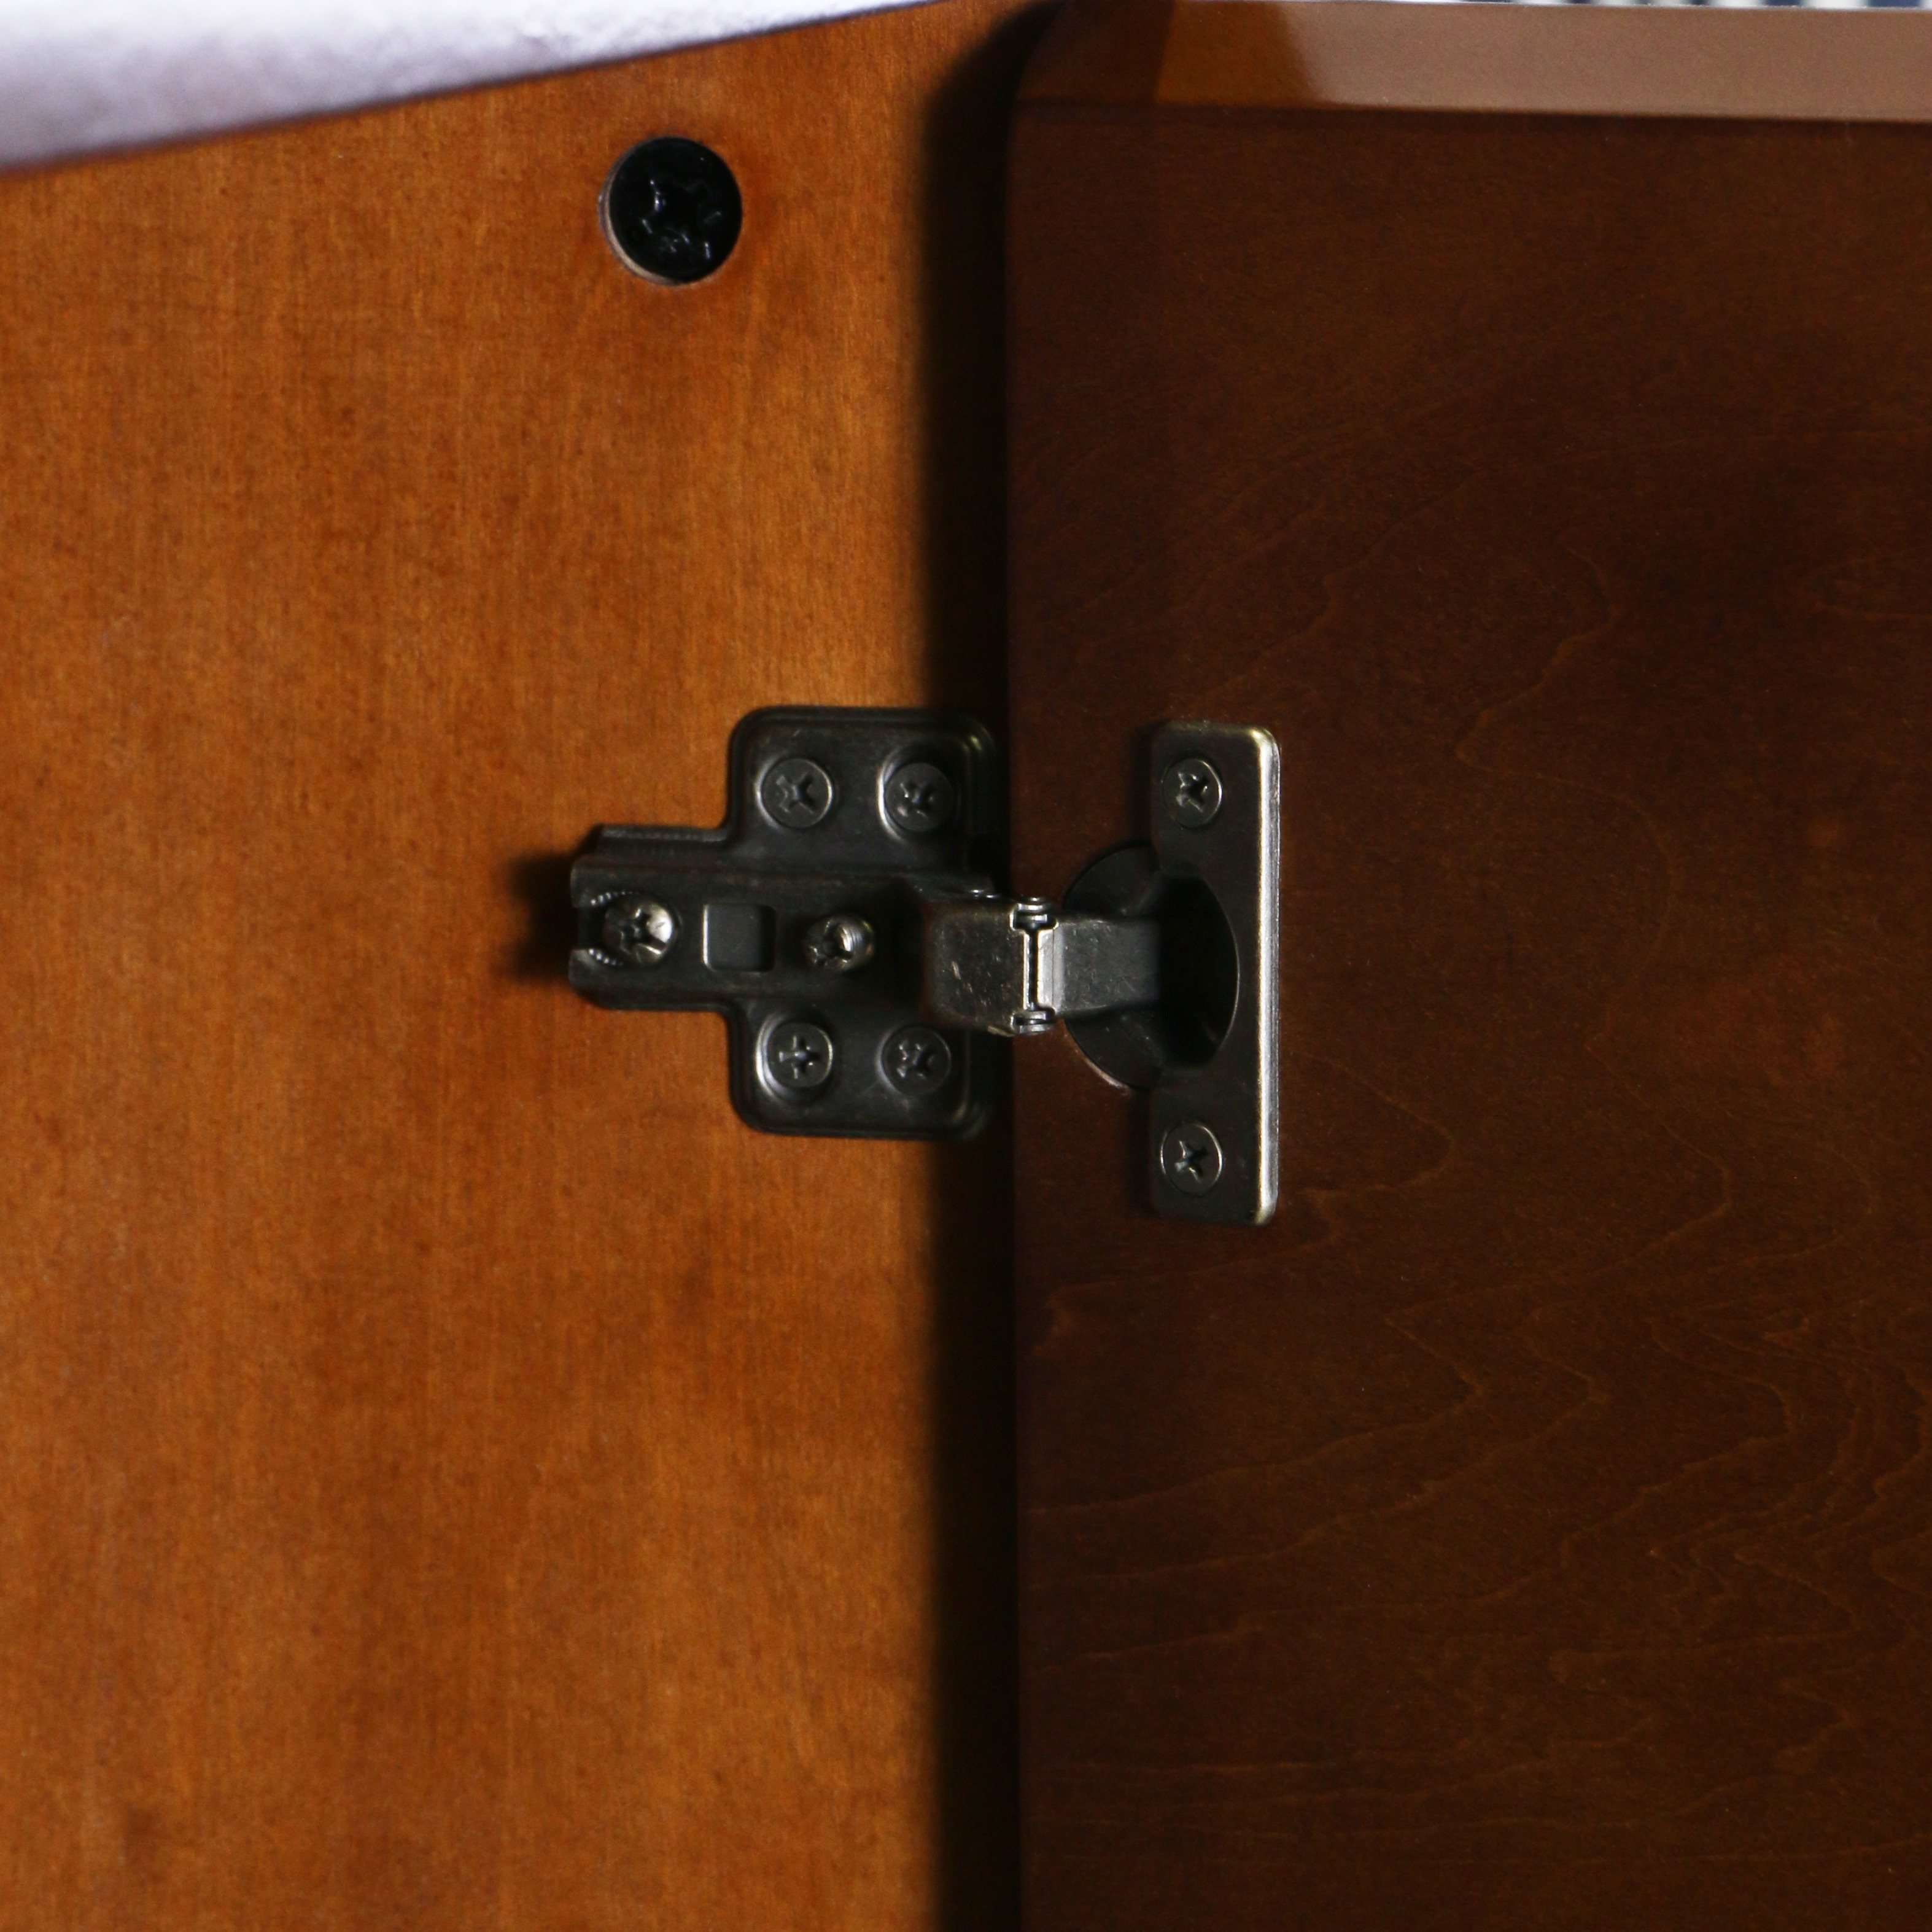 entry handle design woonvcom for hardware doors cabinet door the chrome with pictures amazoncom border century kitchen size full s luxury entrance images mirrored front push handles interior modern mid ideas of pull